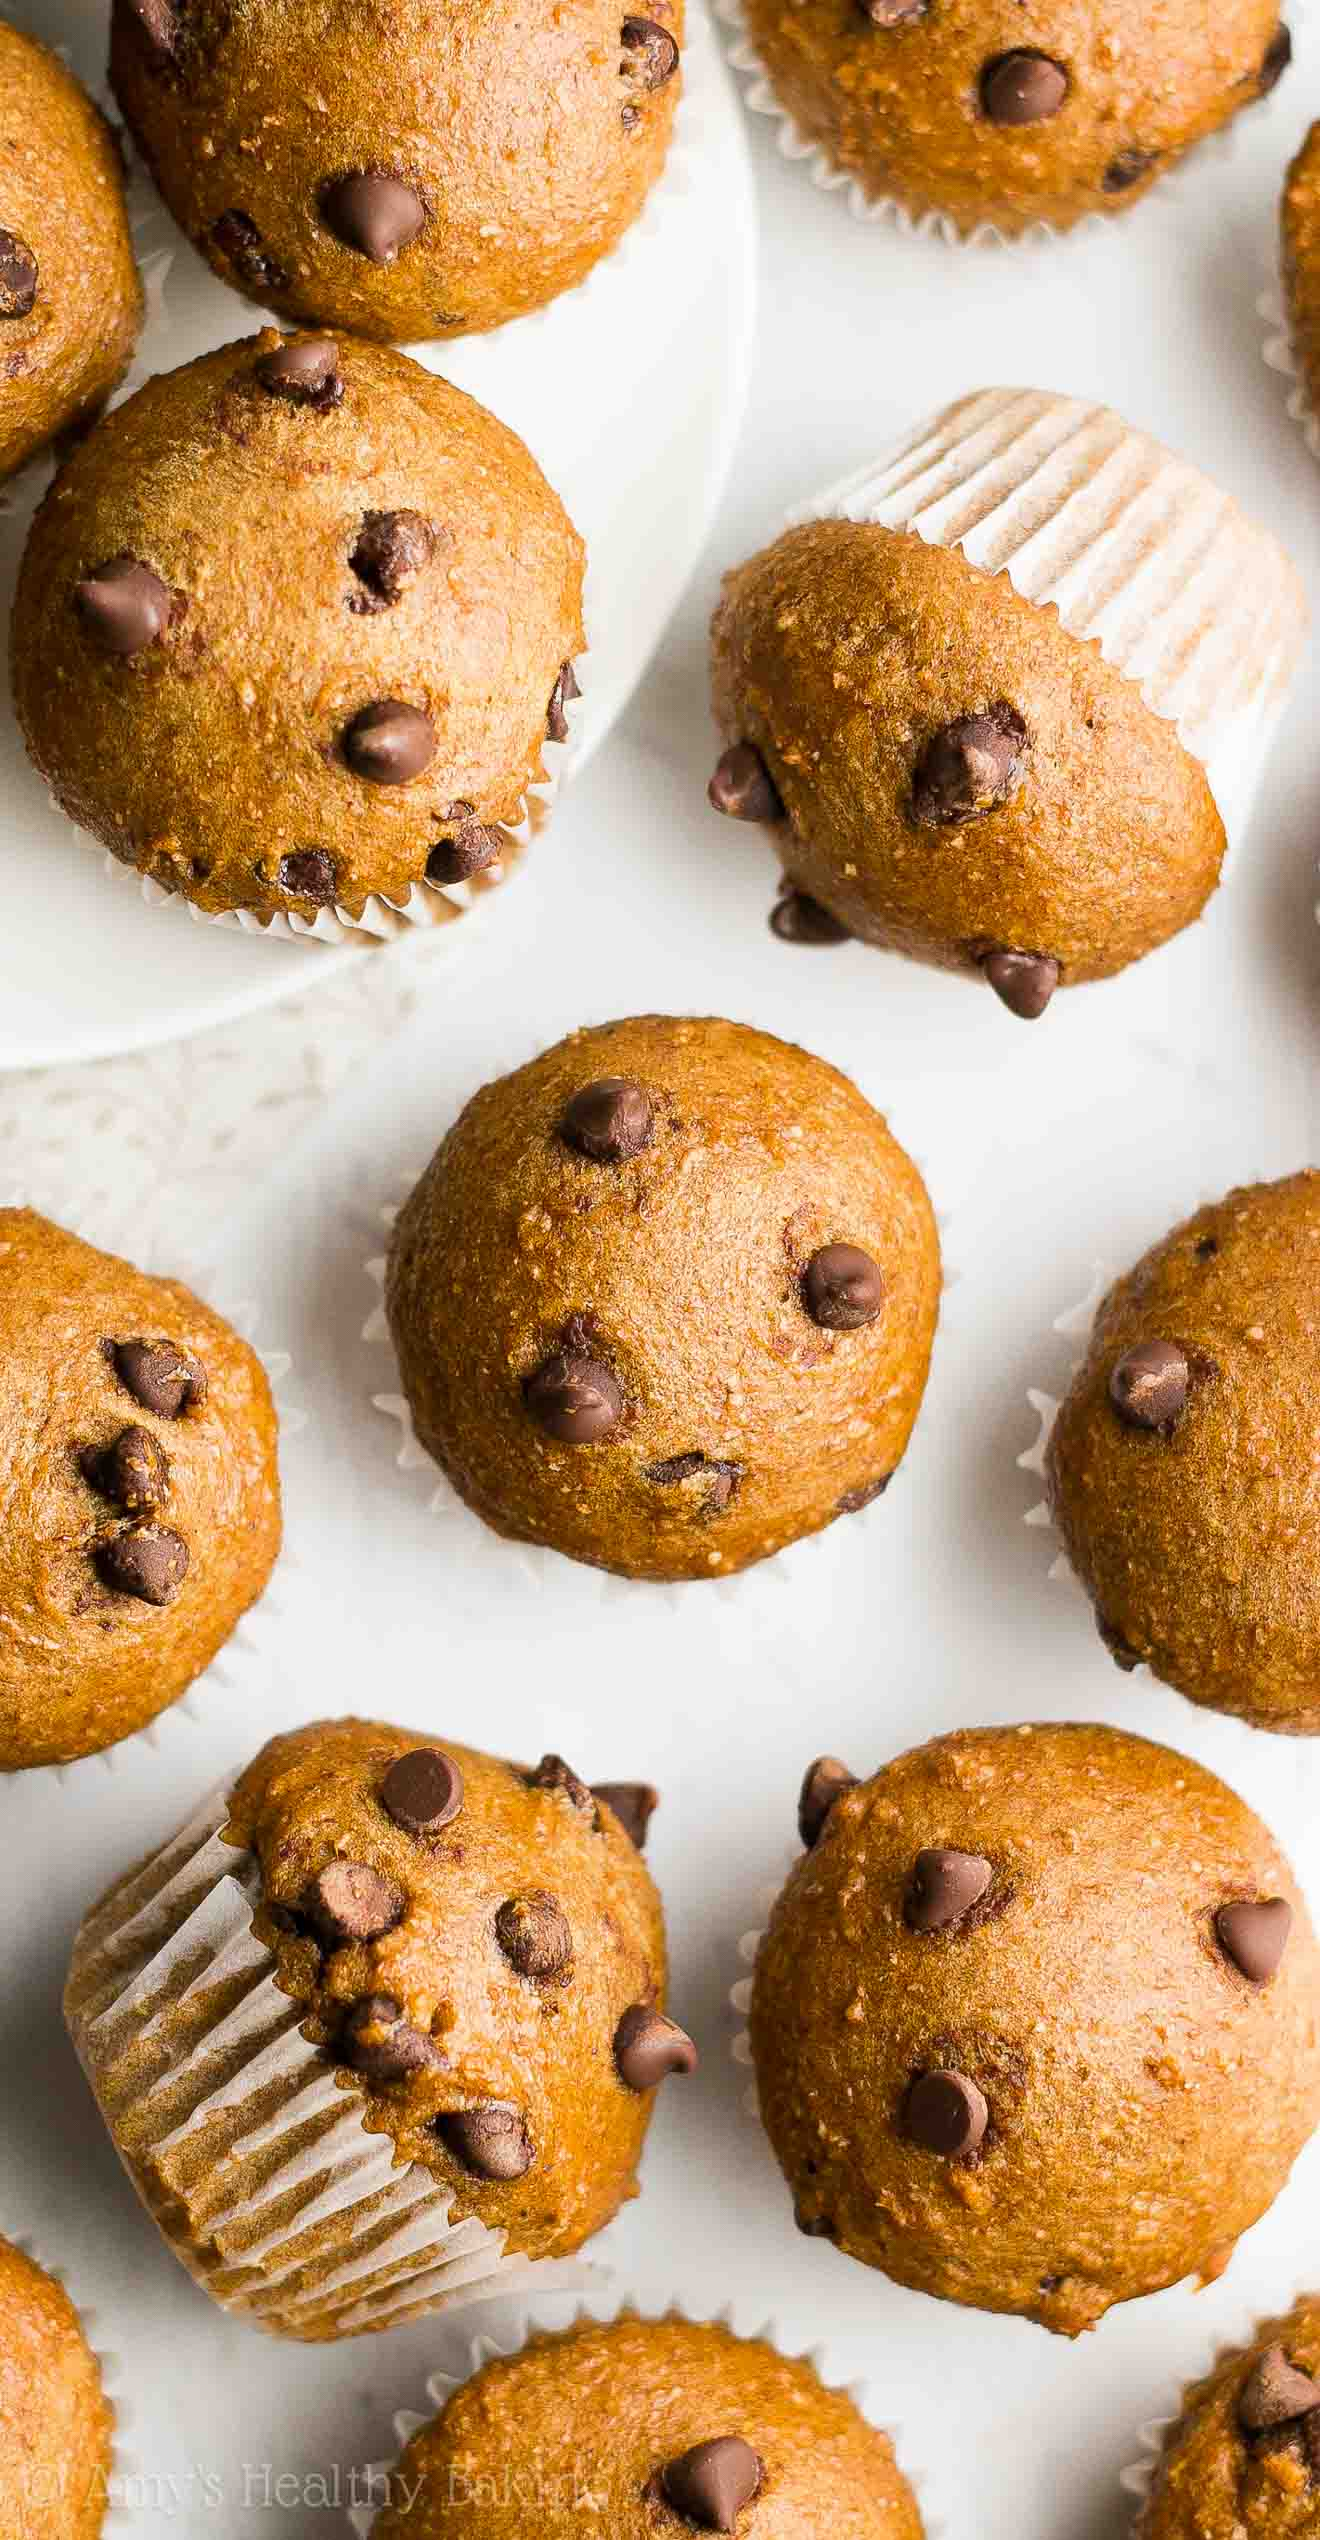 Chocolate Chocolate Chip Muffins Calories